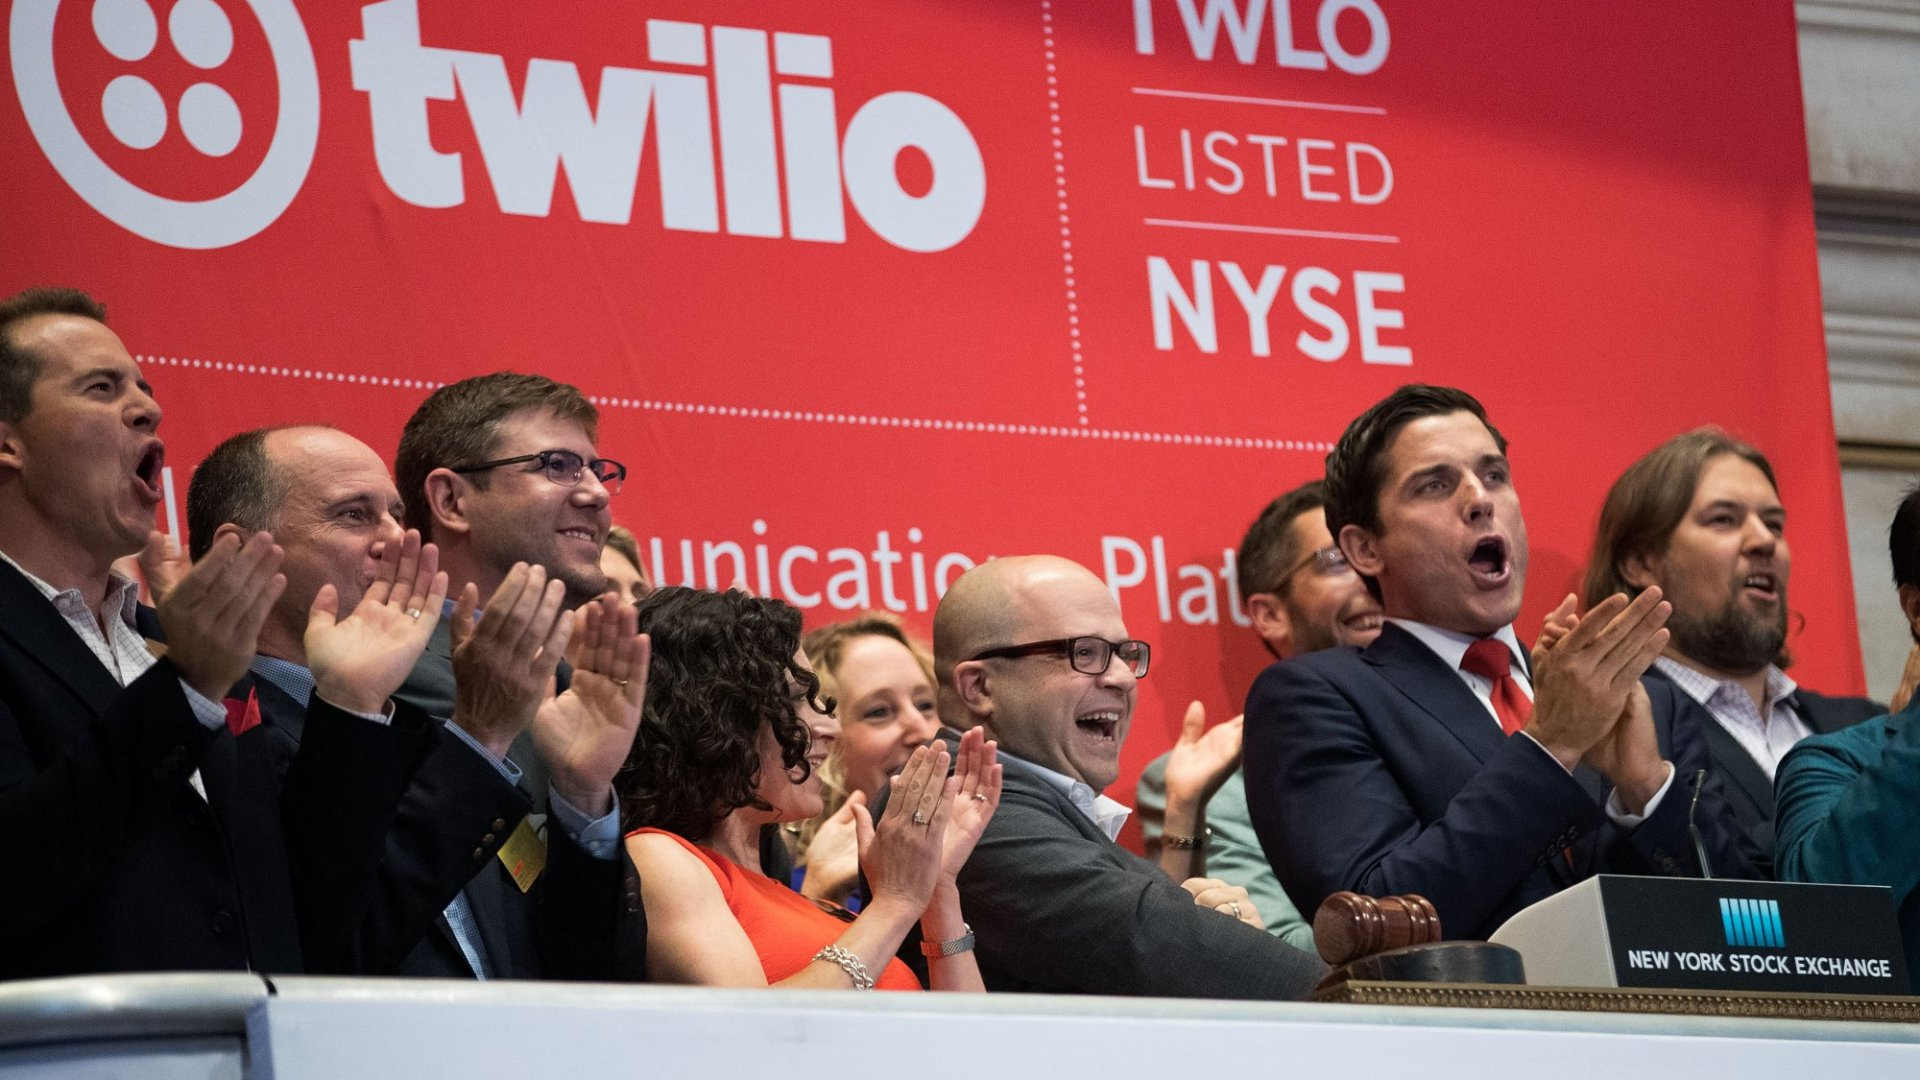 Twilio's IPO Pops, and Silicon Valley Sighs in Relief